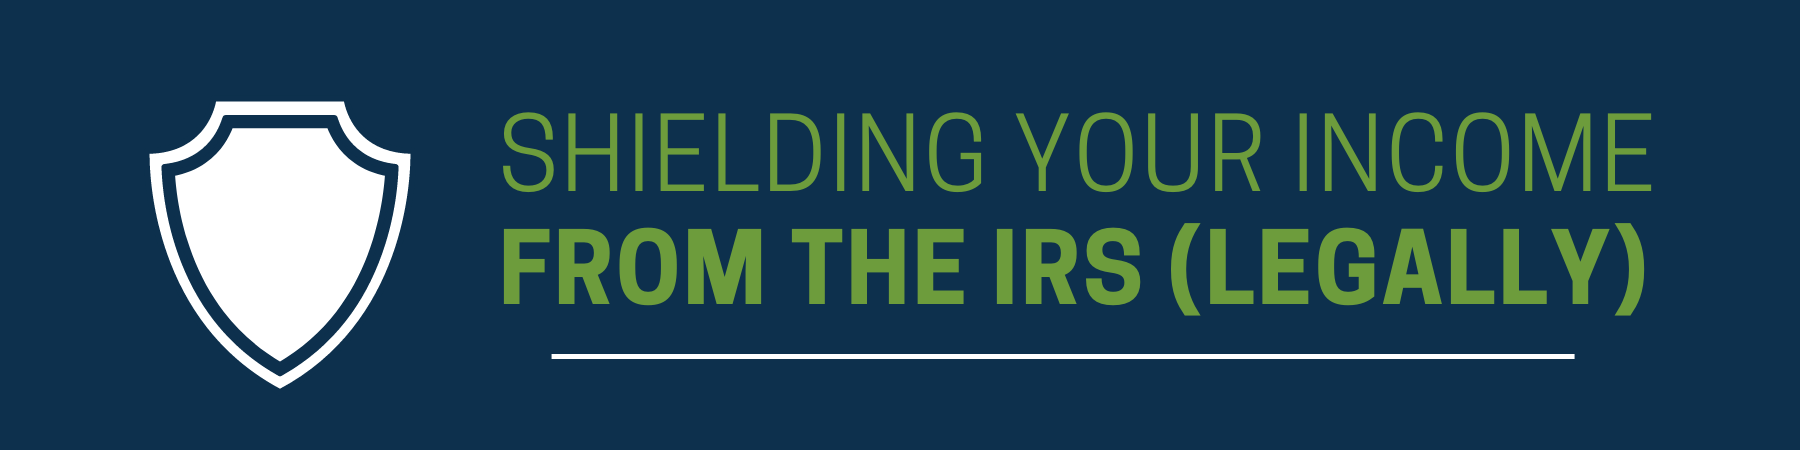 Shielding Income IRS 1800x450 1 | Ken McElroy Image